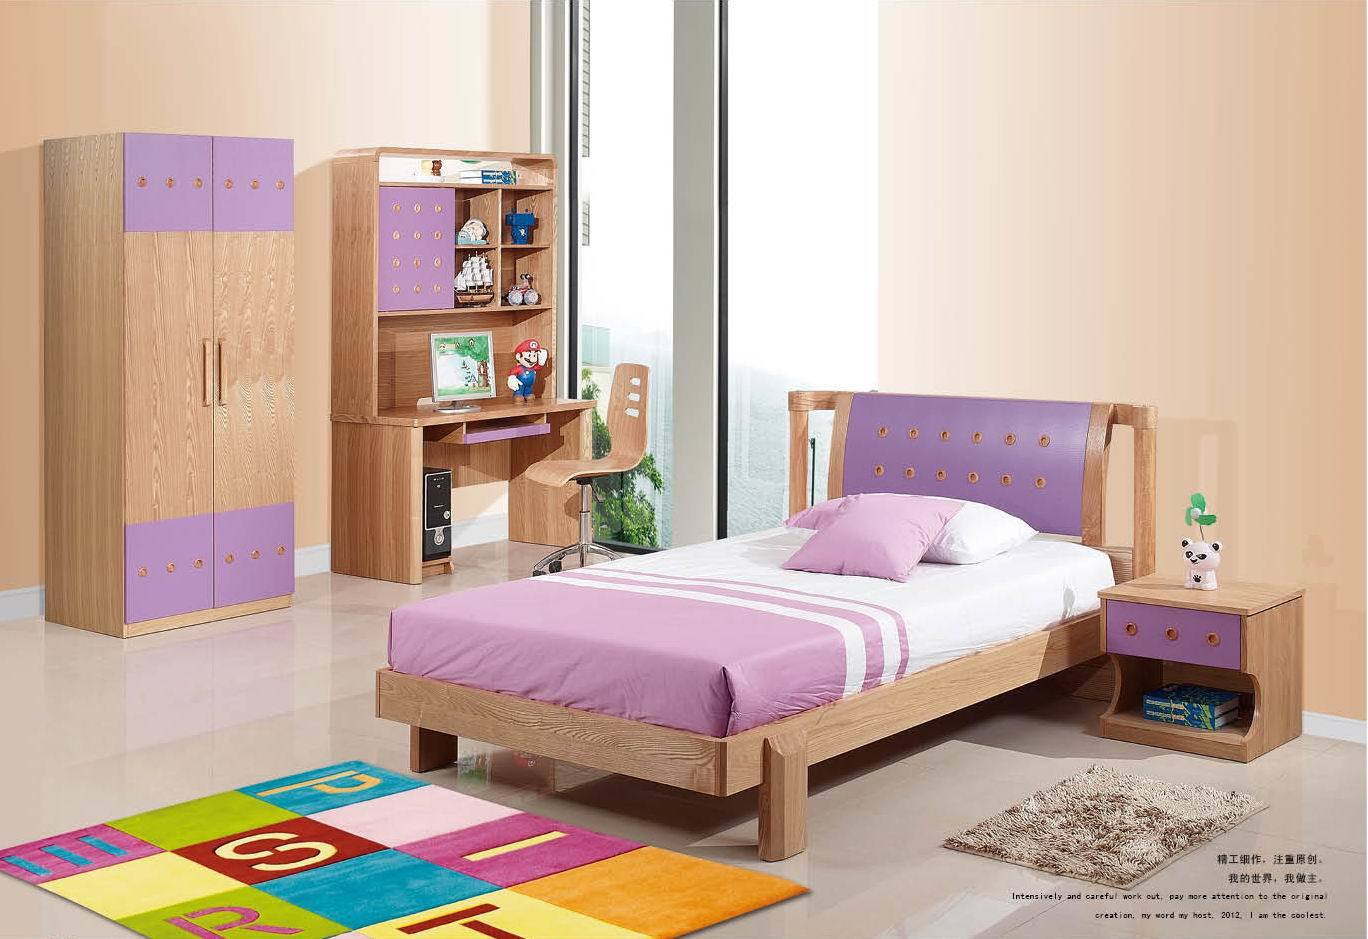 China kids bedroom set jkd 20130 china kids bedroom kids furniture - Children bedrooms ...